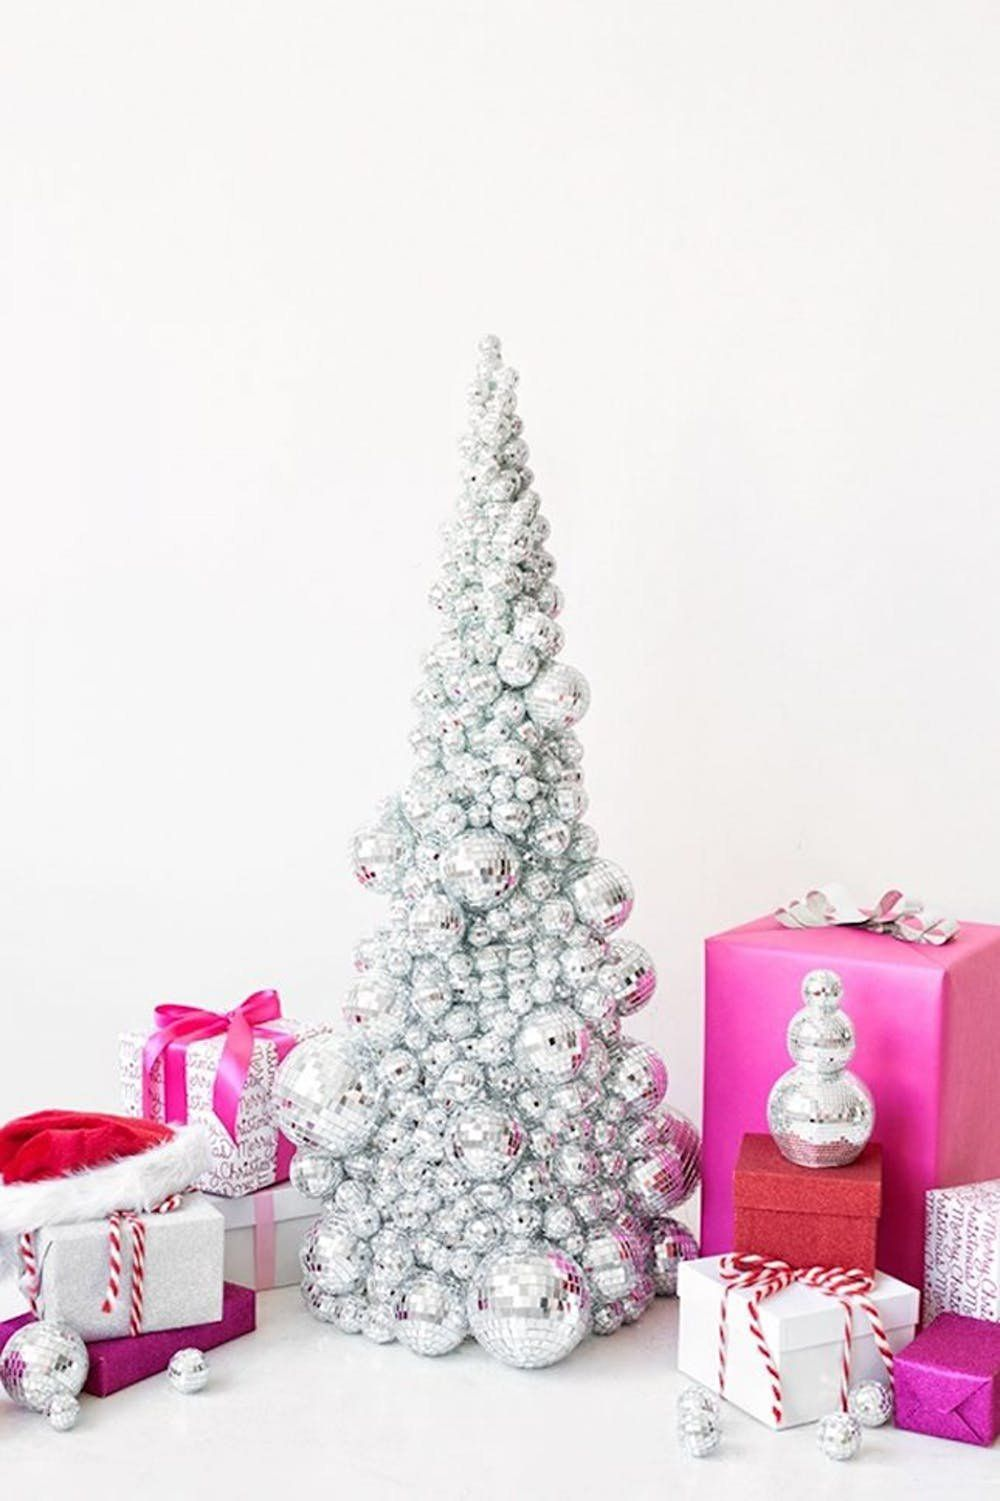 Christmas party and holiday decor ideas for the most epic night ever ...